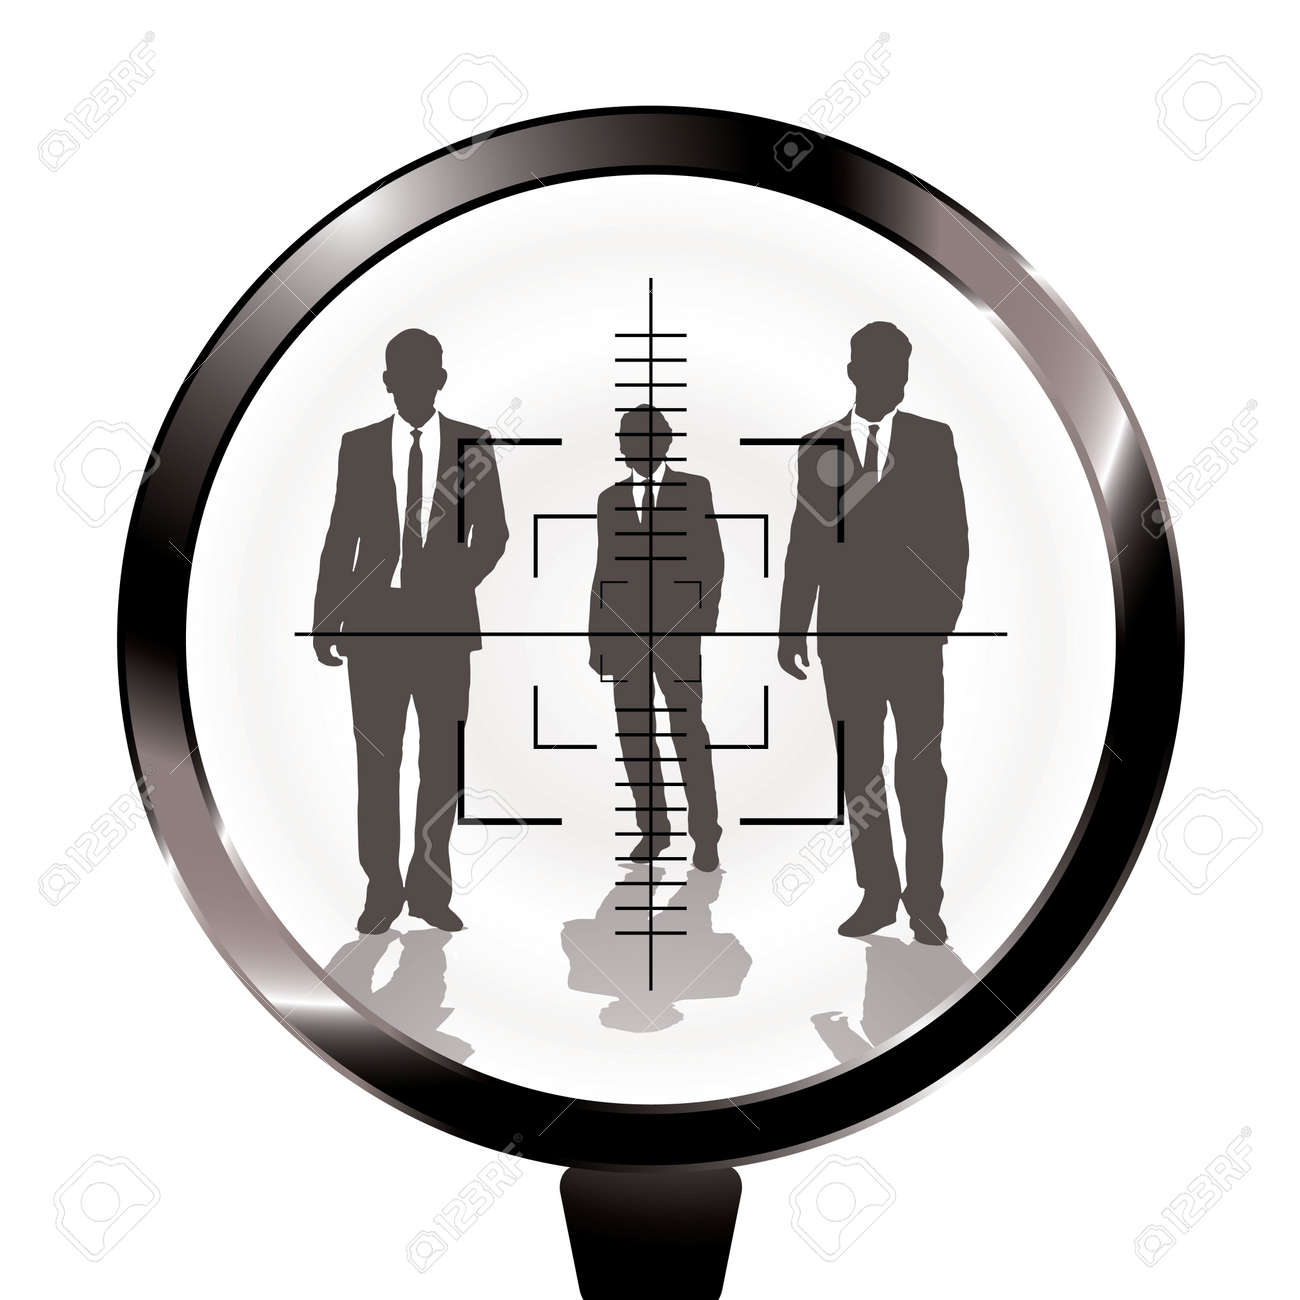 Three businessmen in a gun sight with shadow effect Stock Photo - 6416340